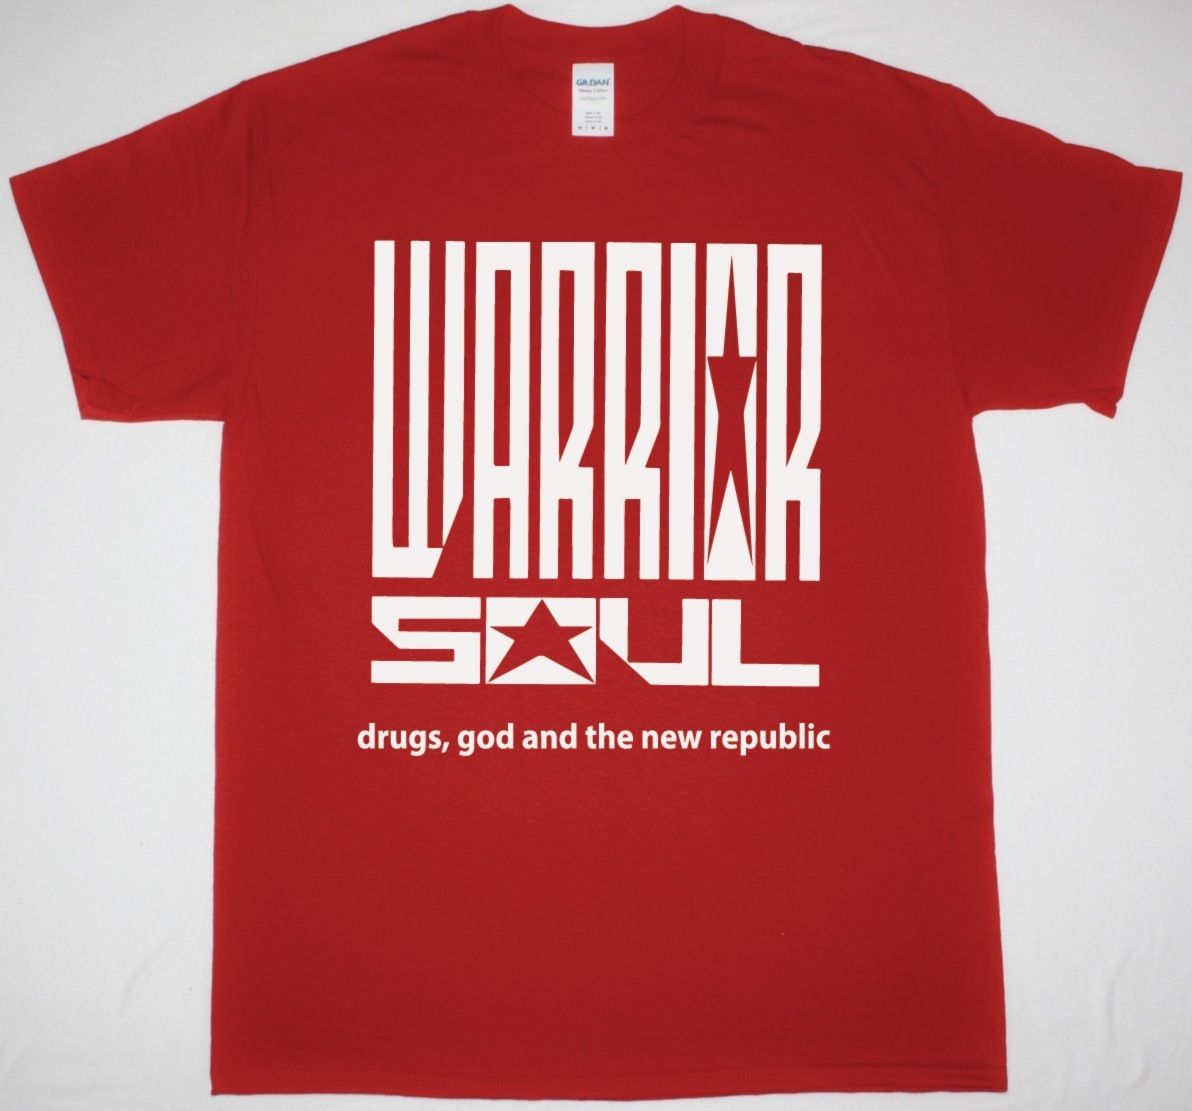 WARRIOR SOUL DRUGS GOD AND THE NEW REPUBLIC RED T SHIRT THE ALMIGHTY THUNDER Unisex Fashion T-Shirt Top Tee Plus Size